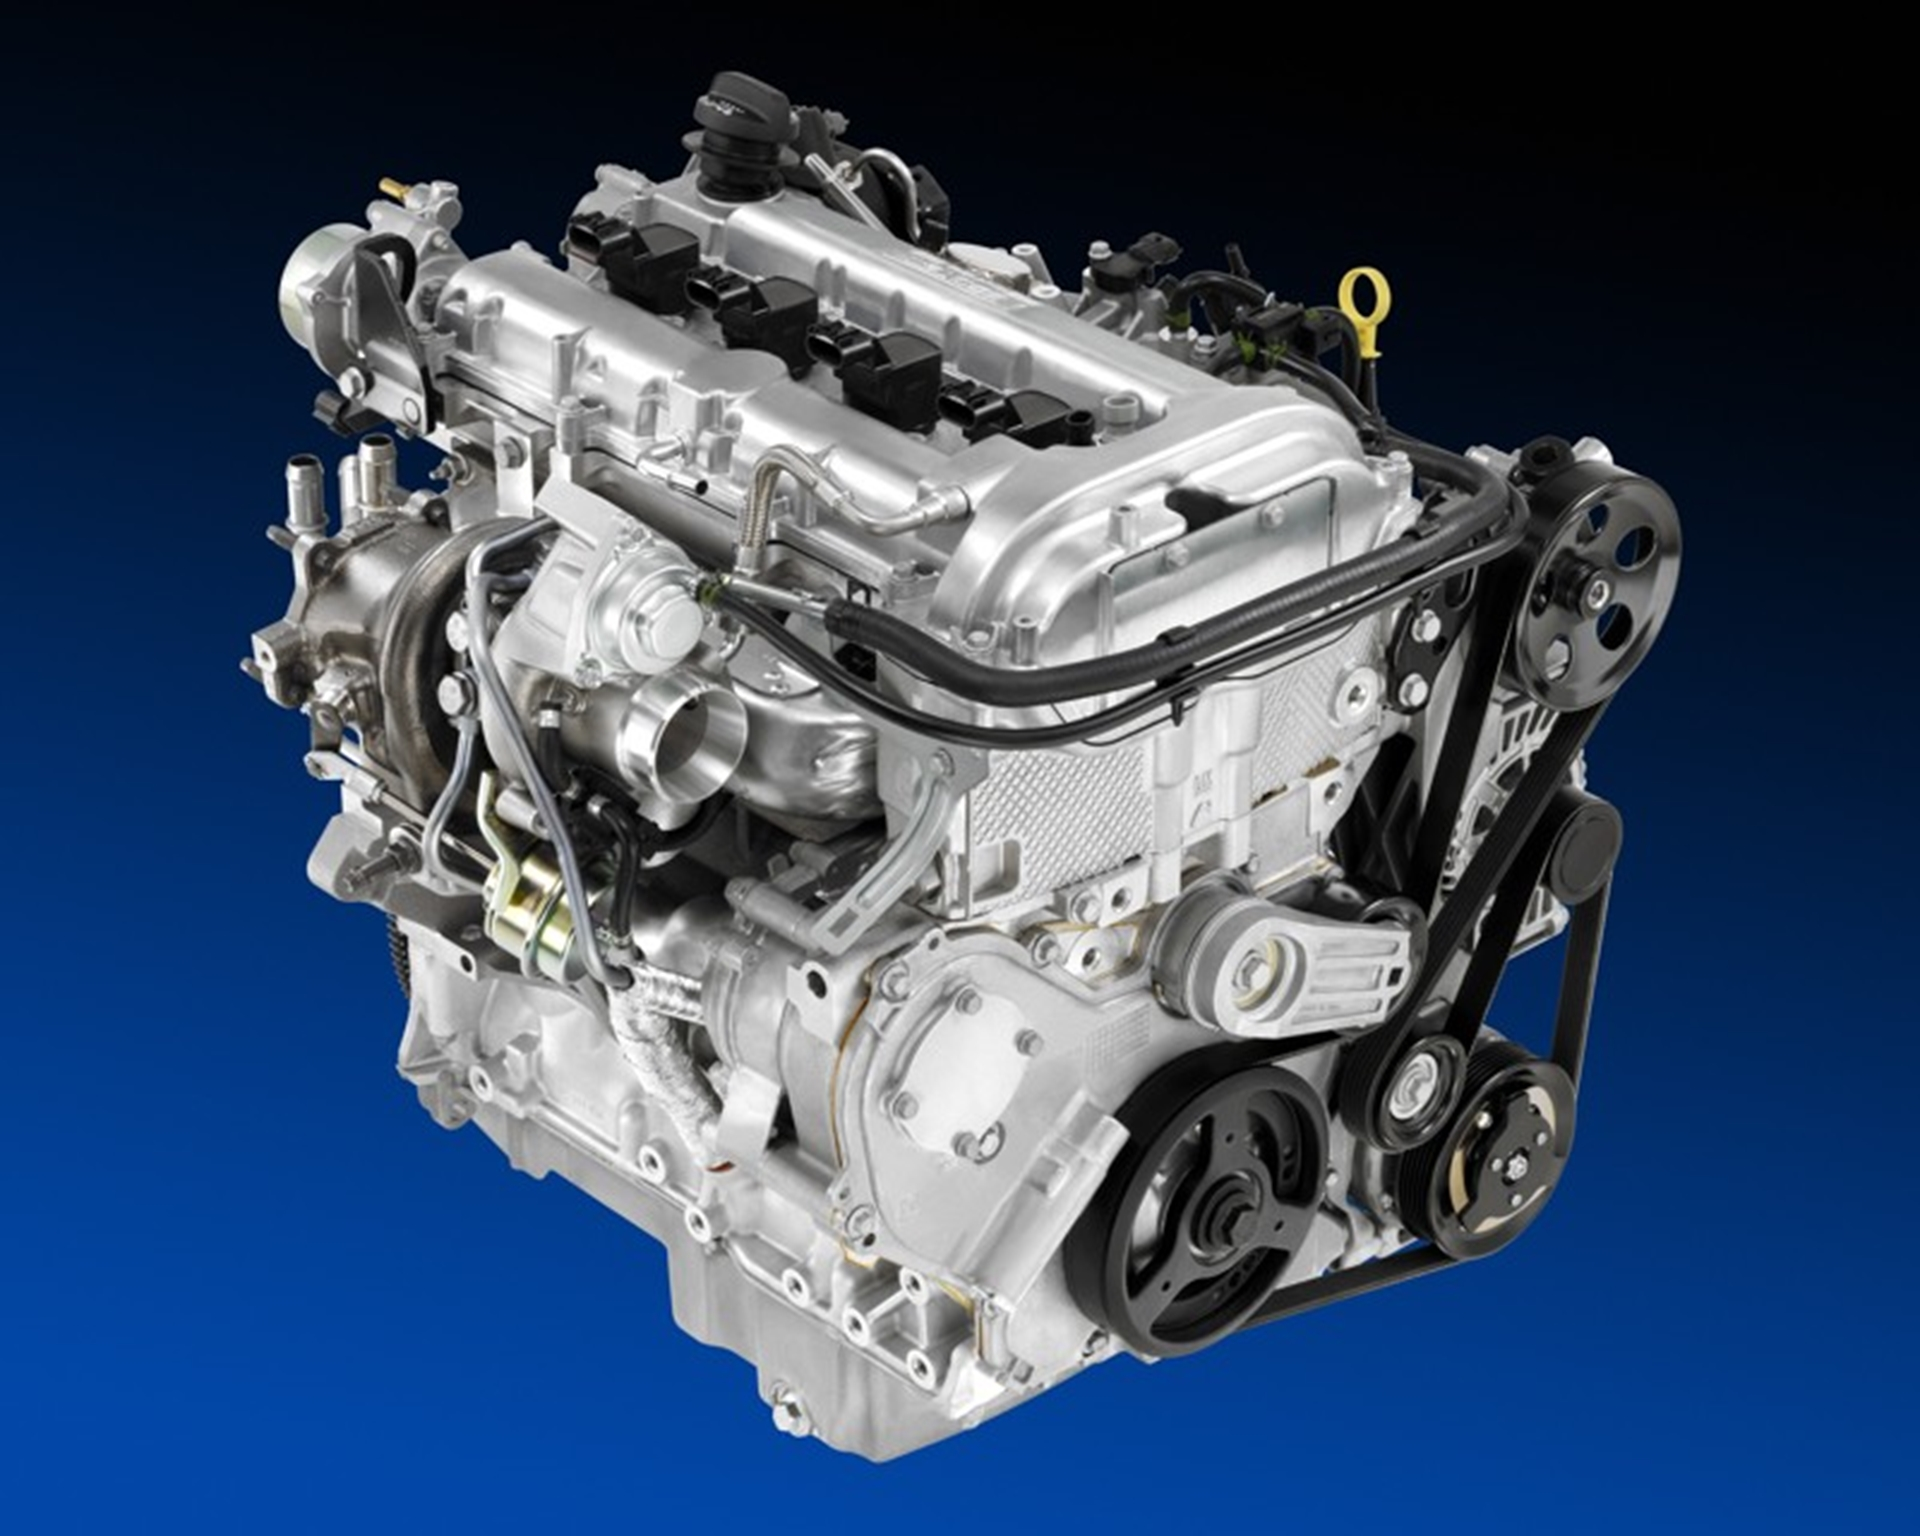 2011 Ecotec 2.0L I-4 VVT DI Turbo for Buick Regal